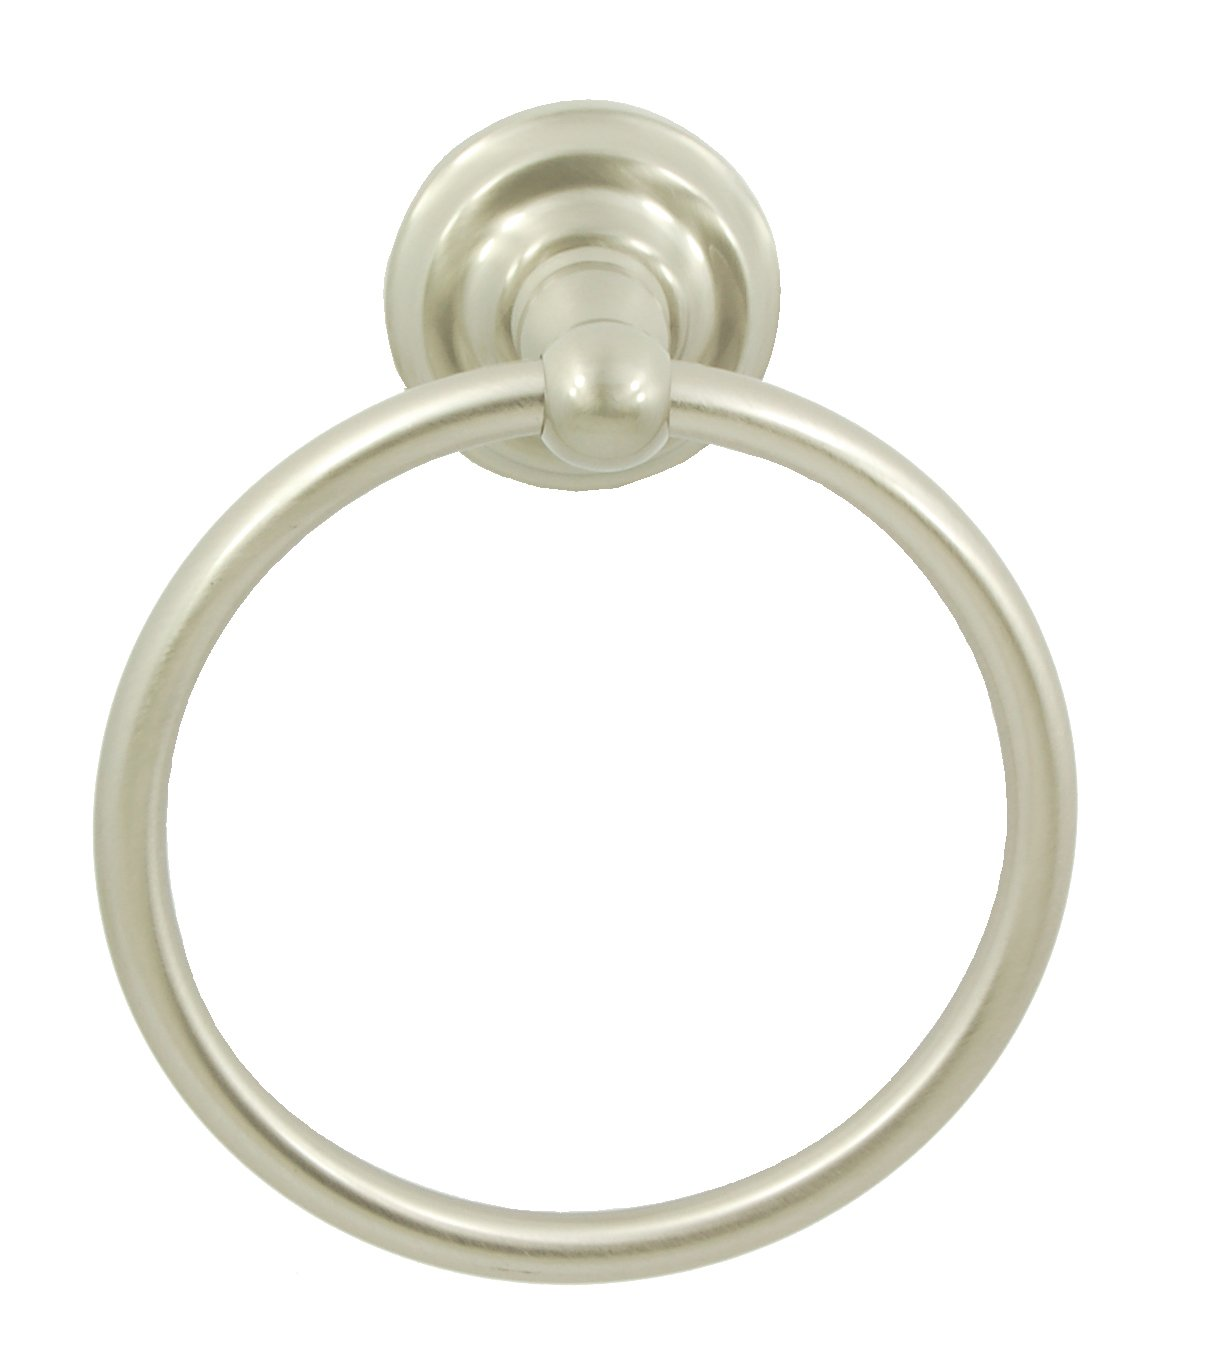 Better Home Products Dolores Park Towel Ring, Satin Nickel